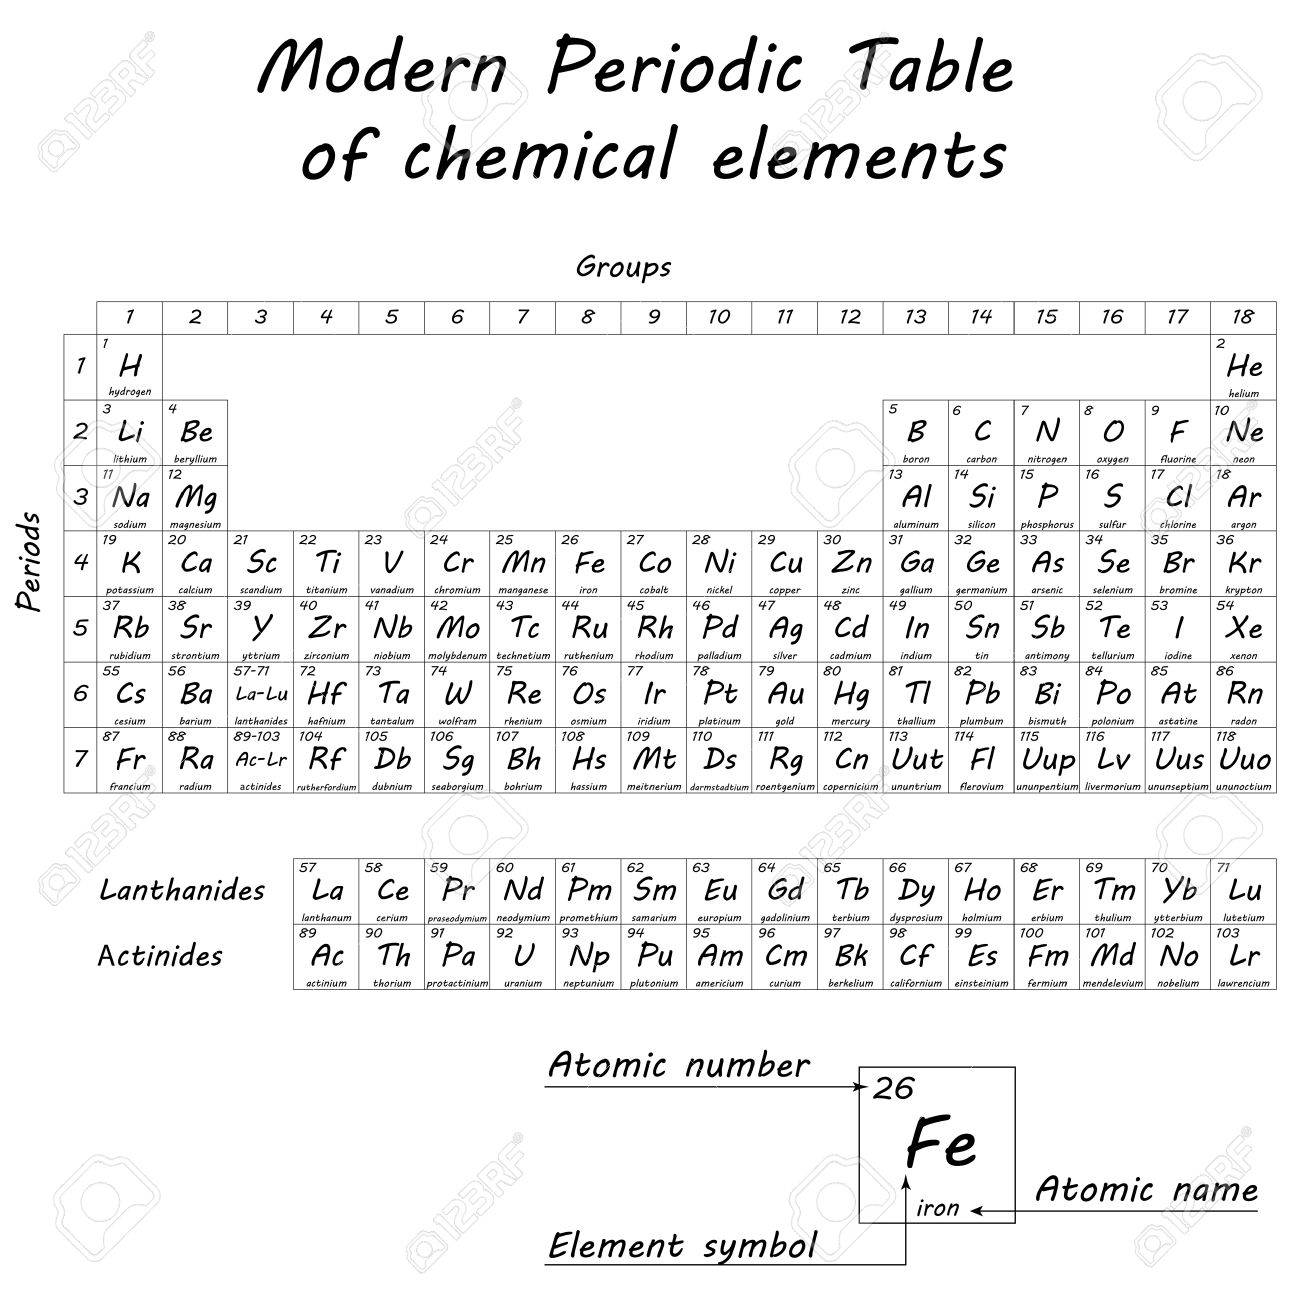 Periodic table of chemical elements by dmitri ivanovich mendeleev periodic table of chemical elements by dmitri ivanovich mendeleev 2d vector eps 8 stock urtaz Choice Image